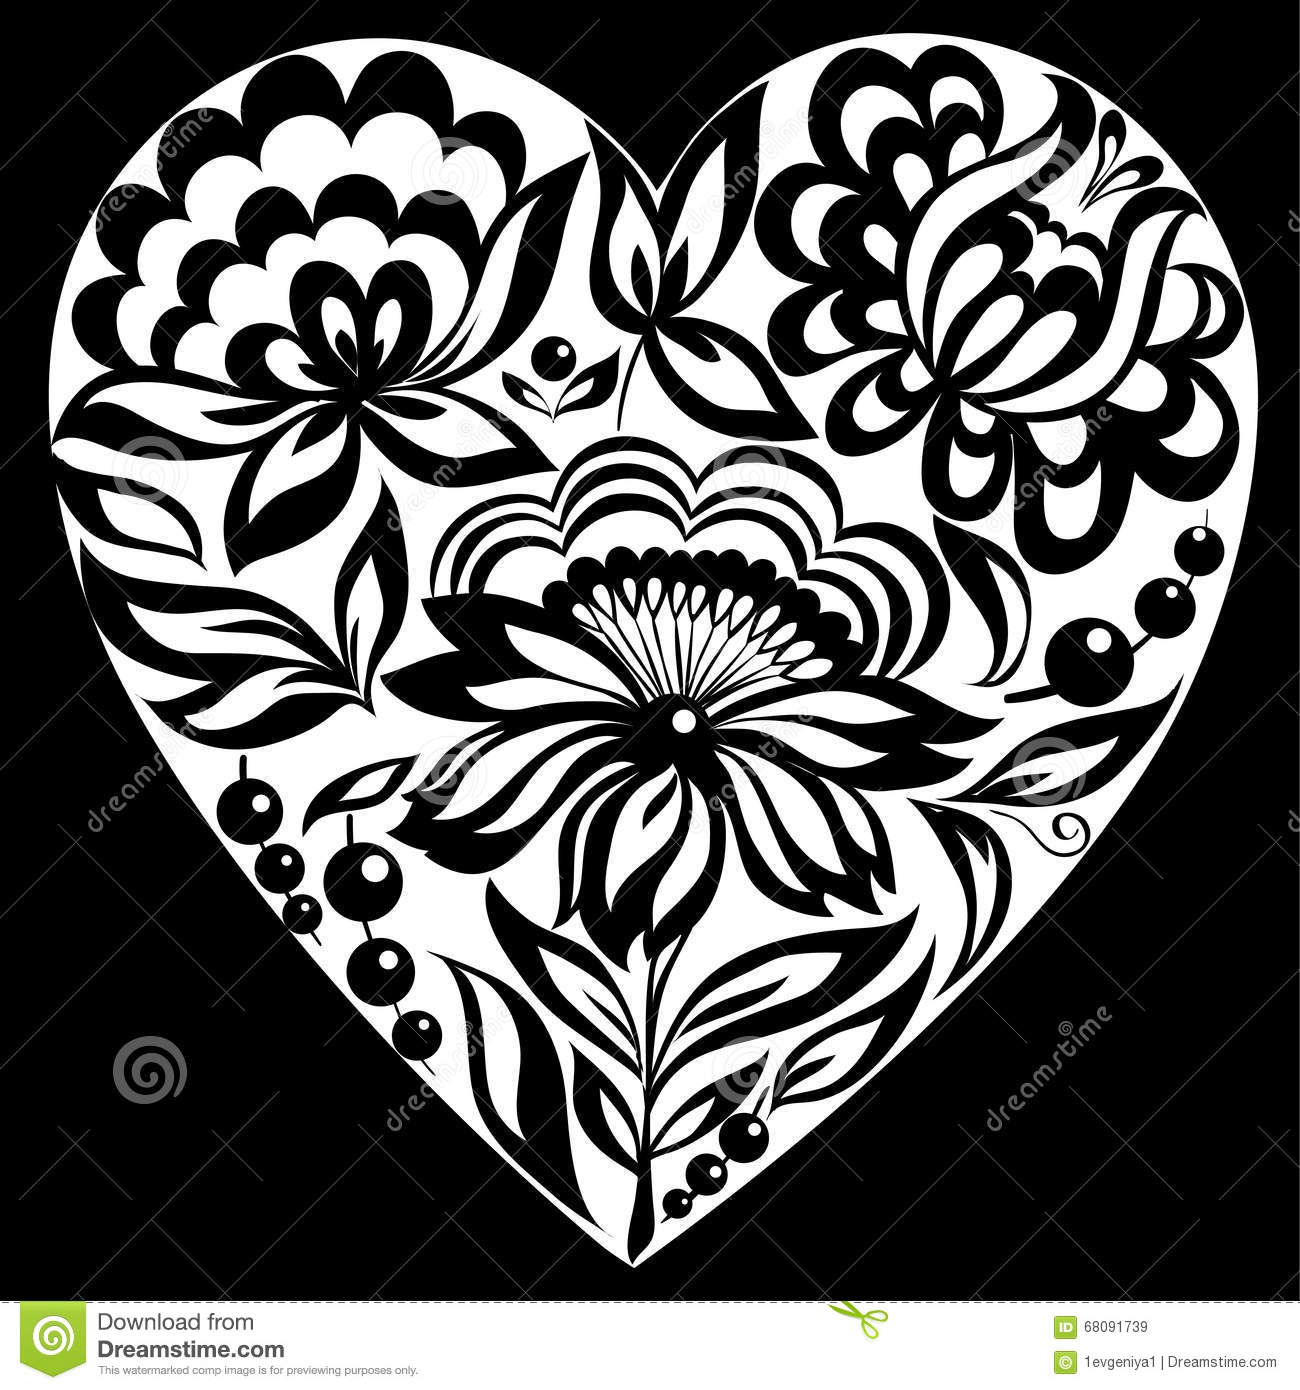 Black Flower Heart Shape Illustration Tattoo On White: Beautiful Monochrome Black And White Silhouette Of The